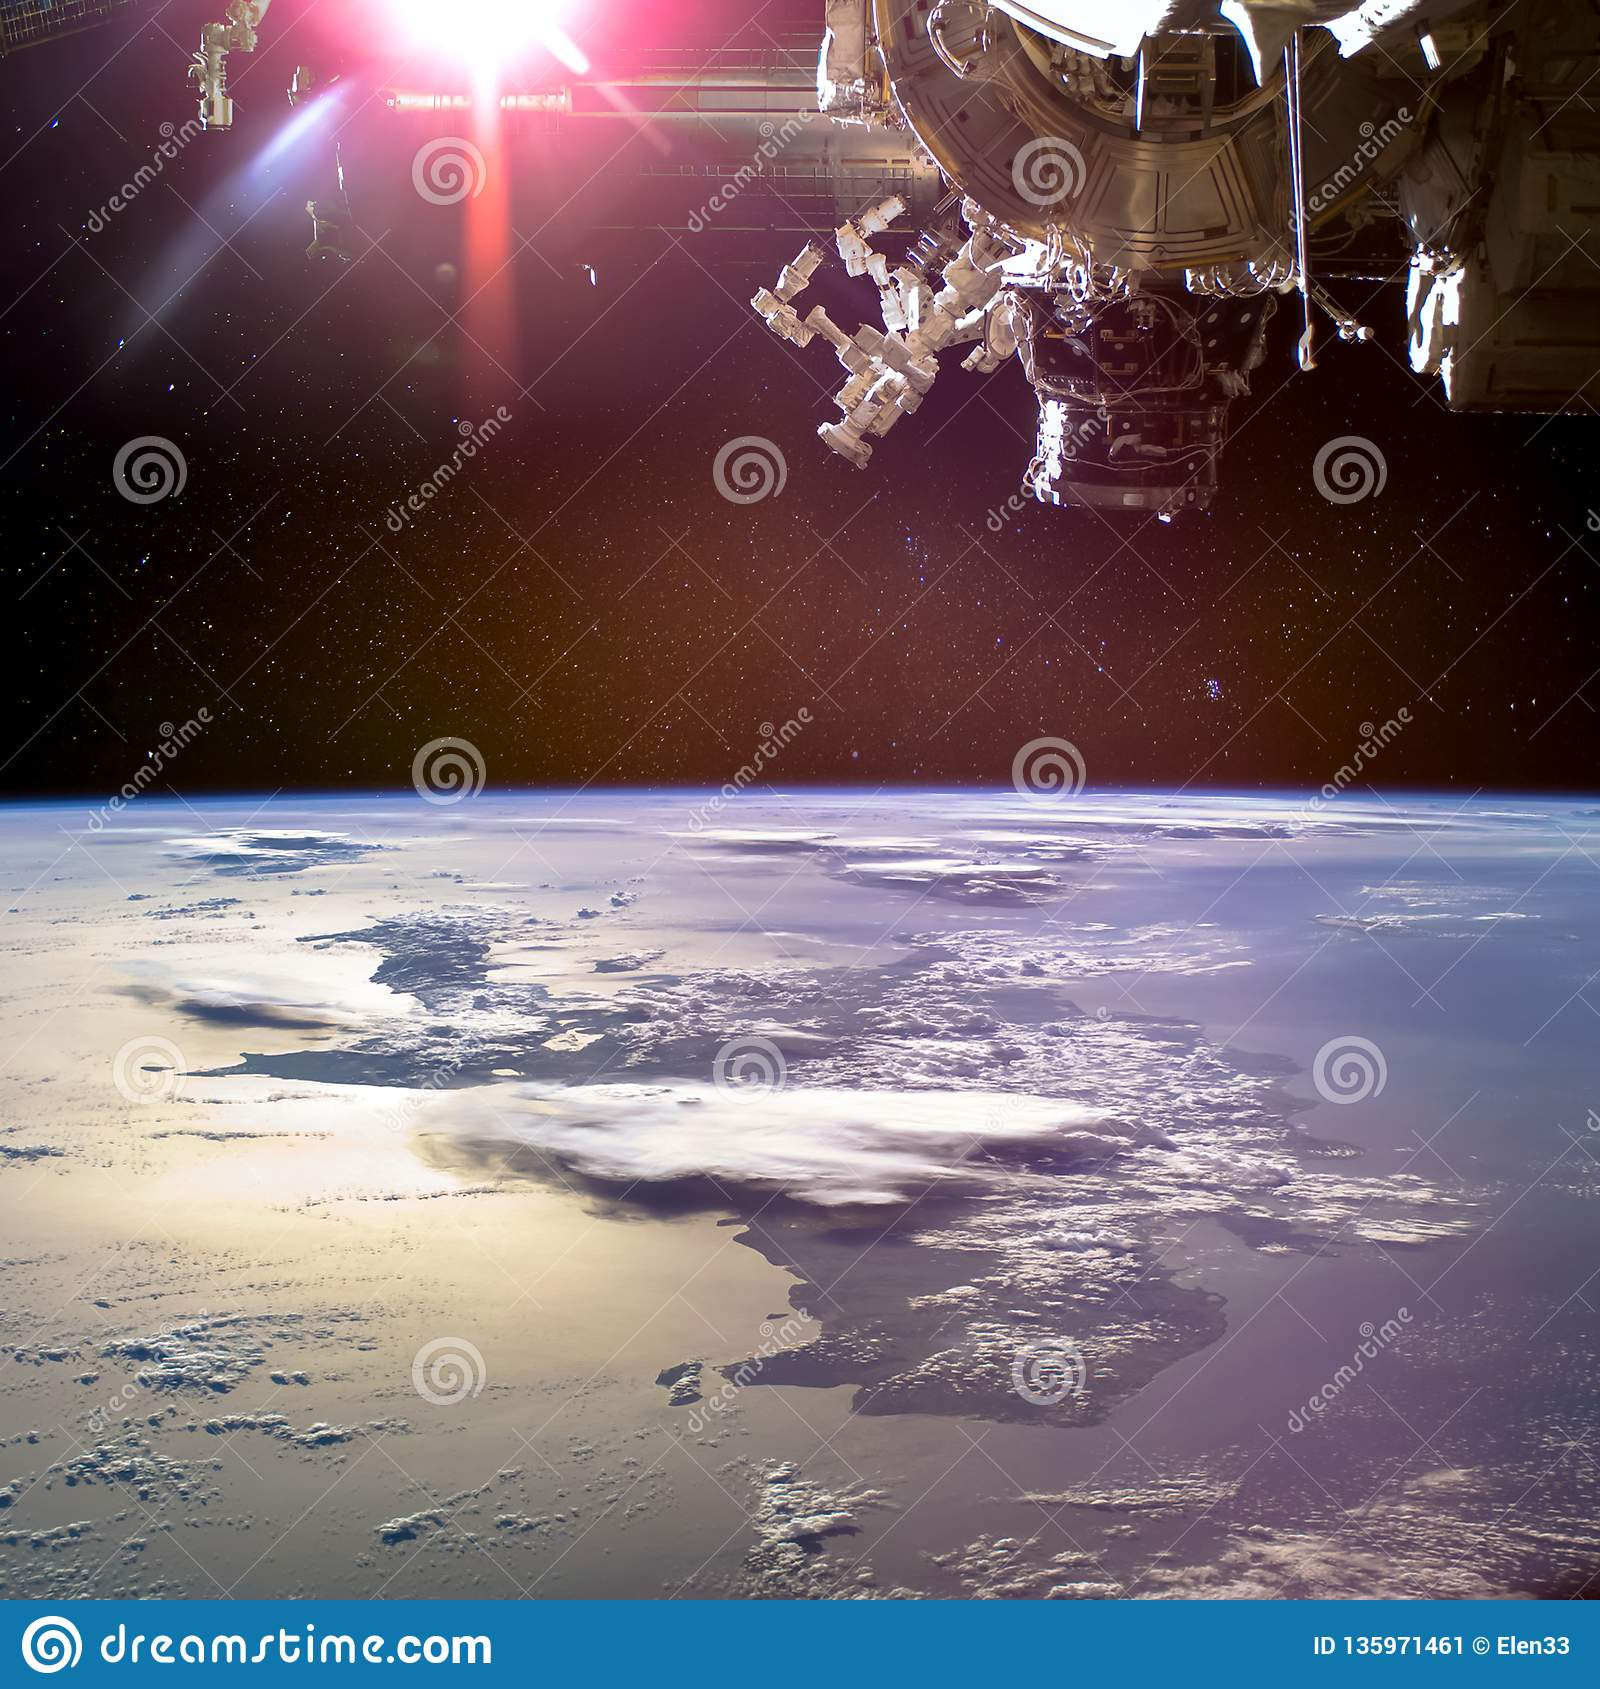 Collage image with planet Earth from the outer space and spaceship above.